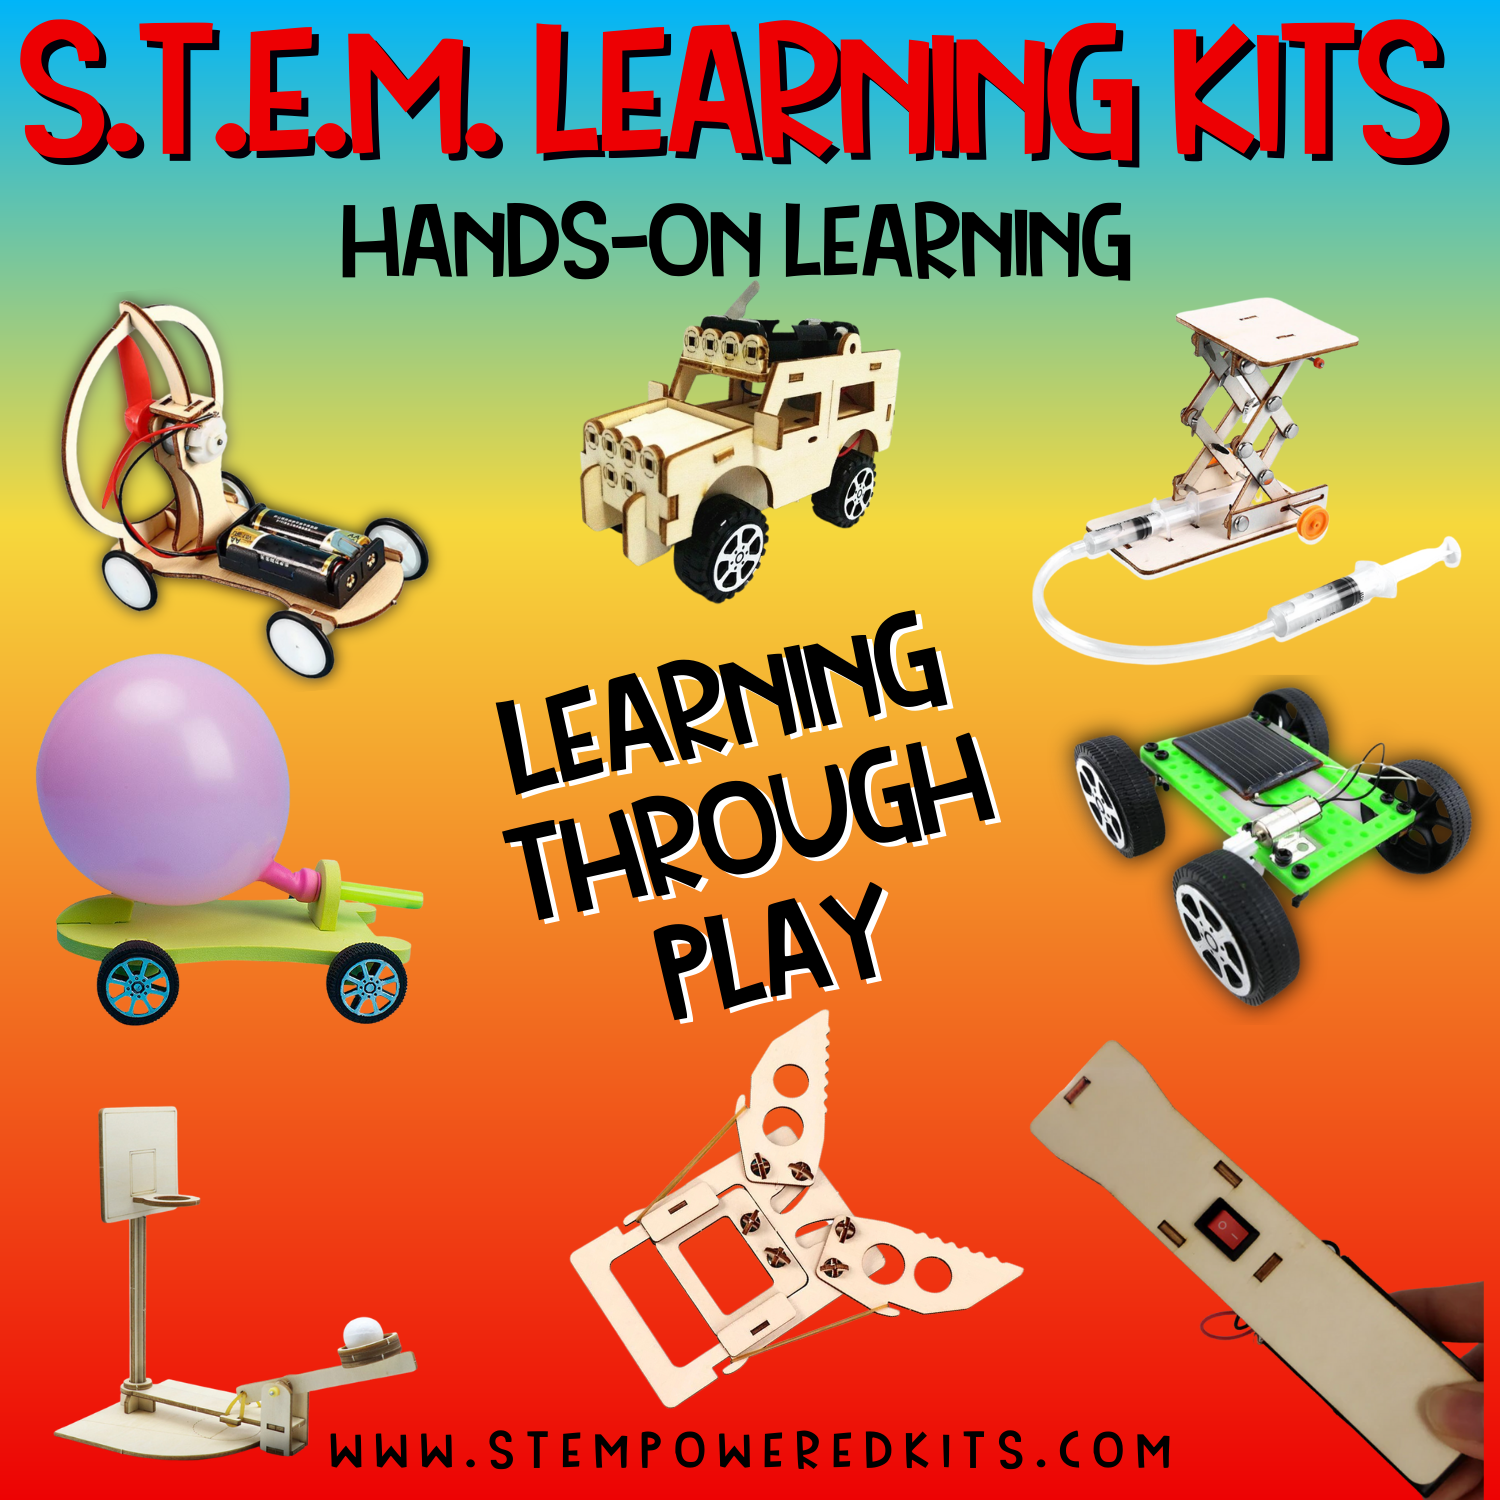 11 Year Old Business Owner Curating STEM Learning Toys 1